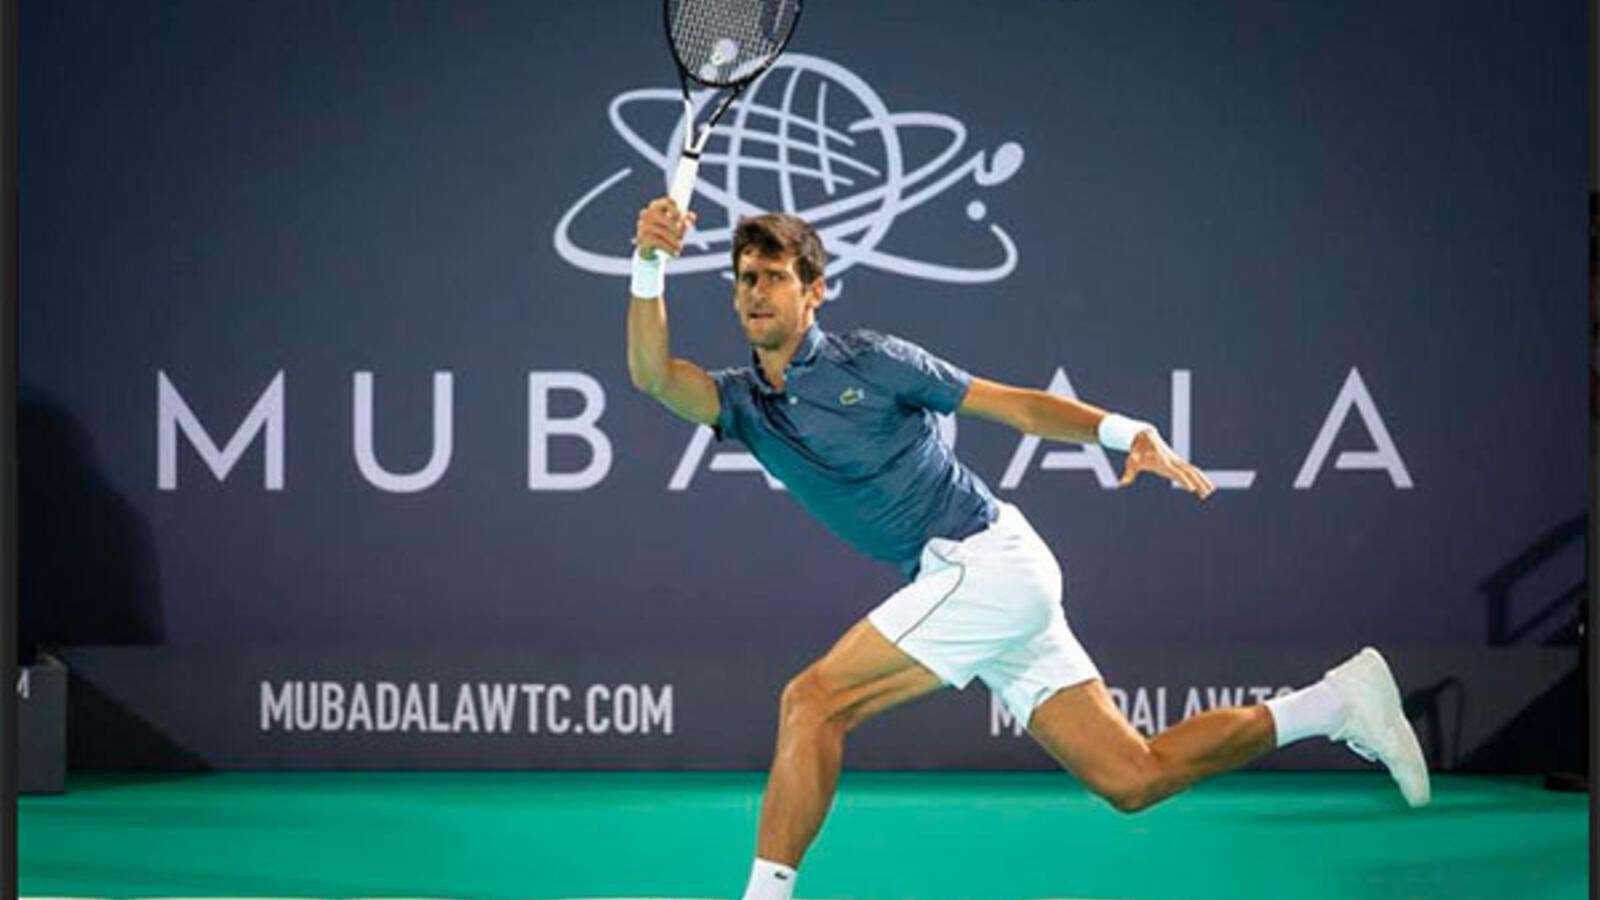 Novak Djokovic (Photo: TradeArabia)